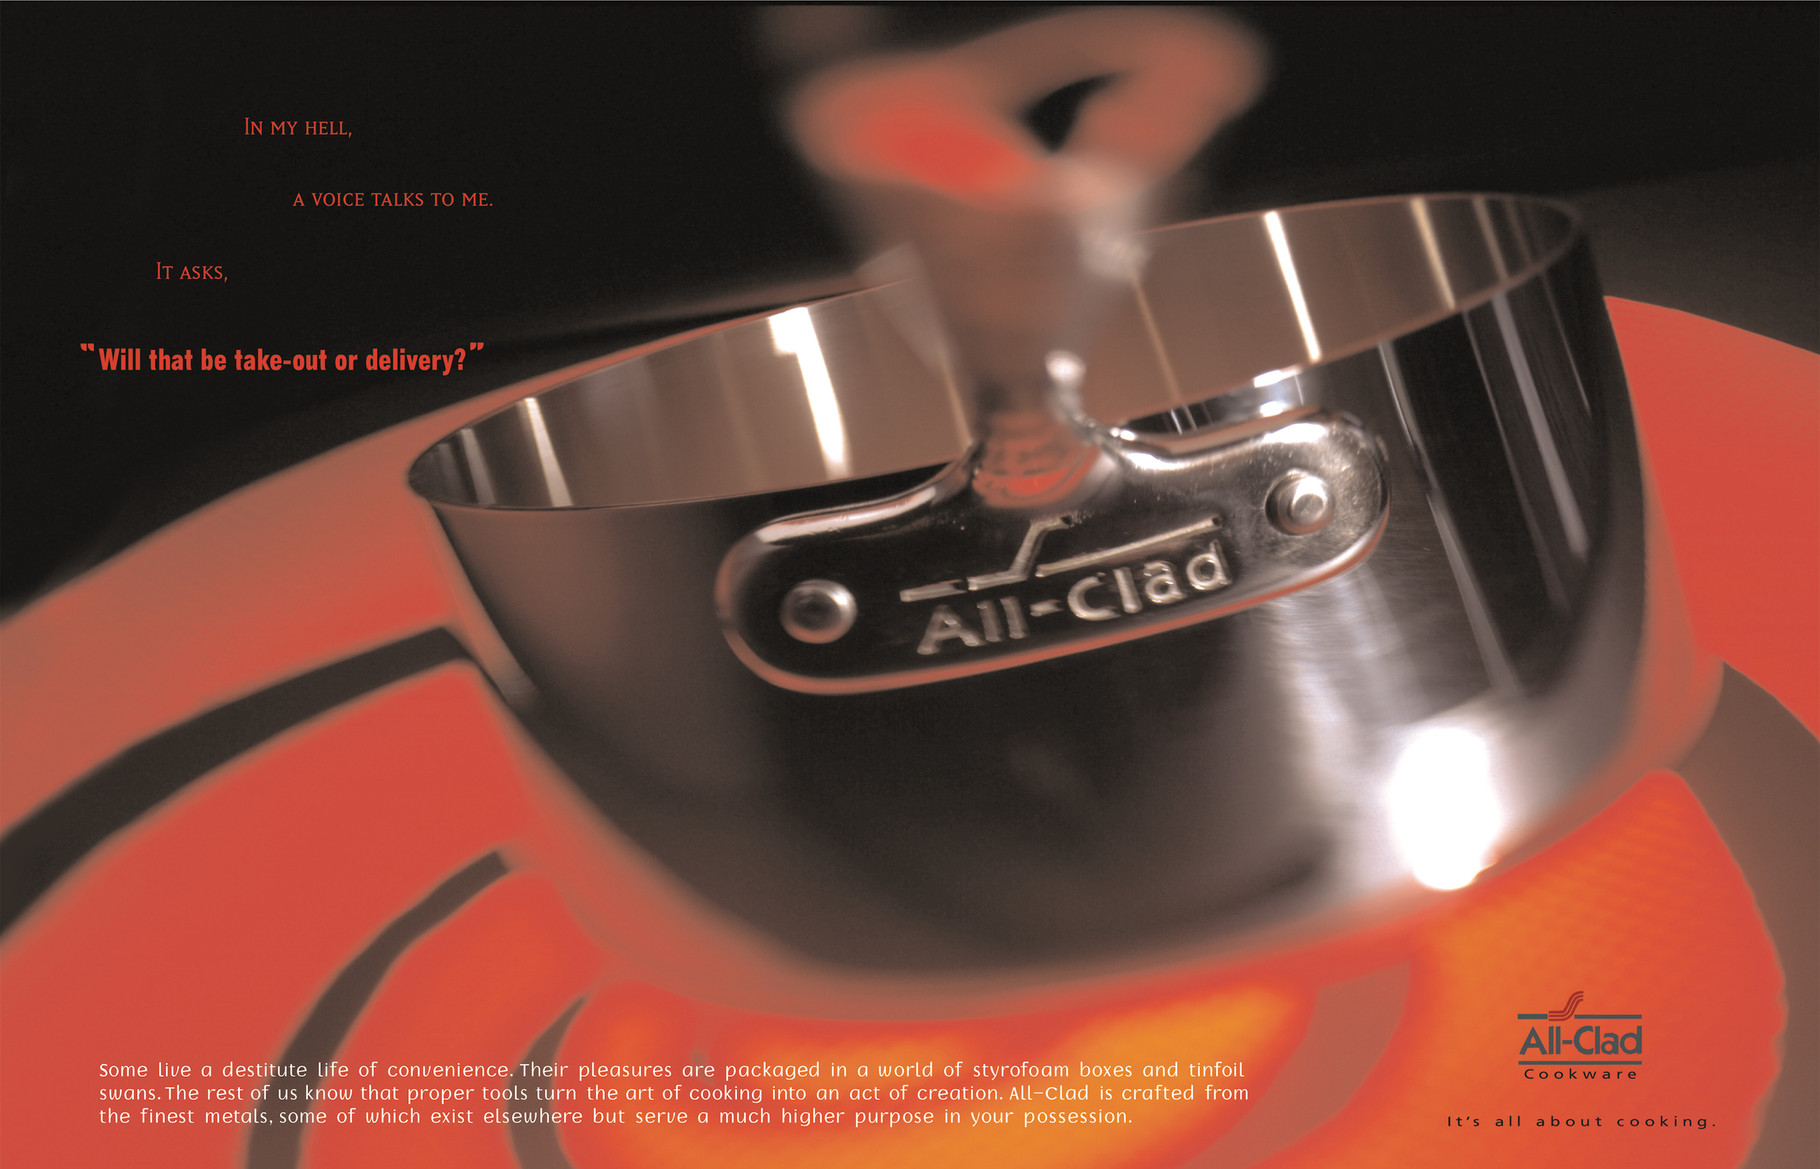 Print Ad for All-Clad, the cookware choice of people who truly love to cook.